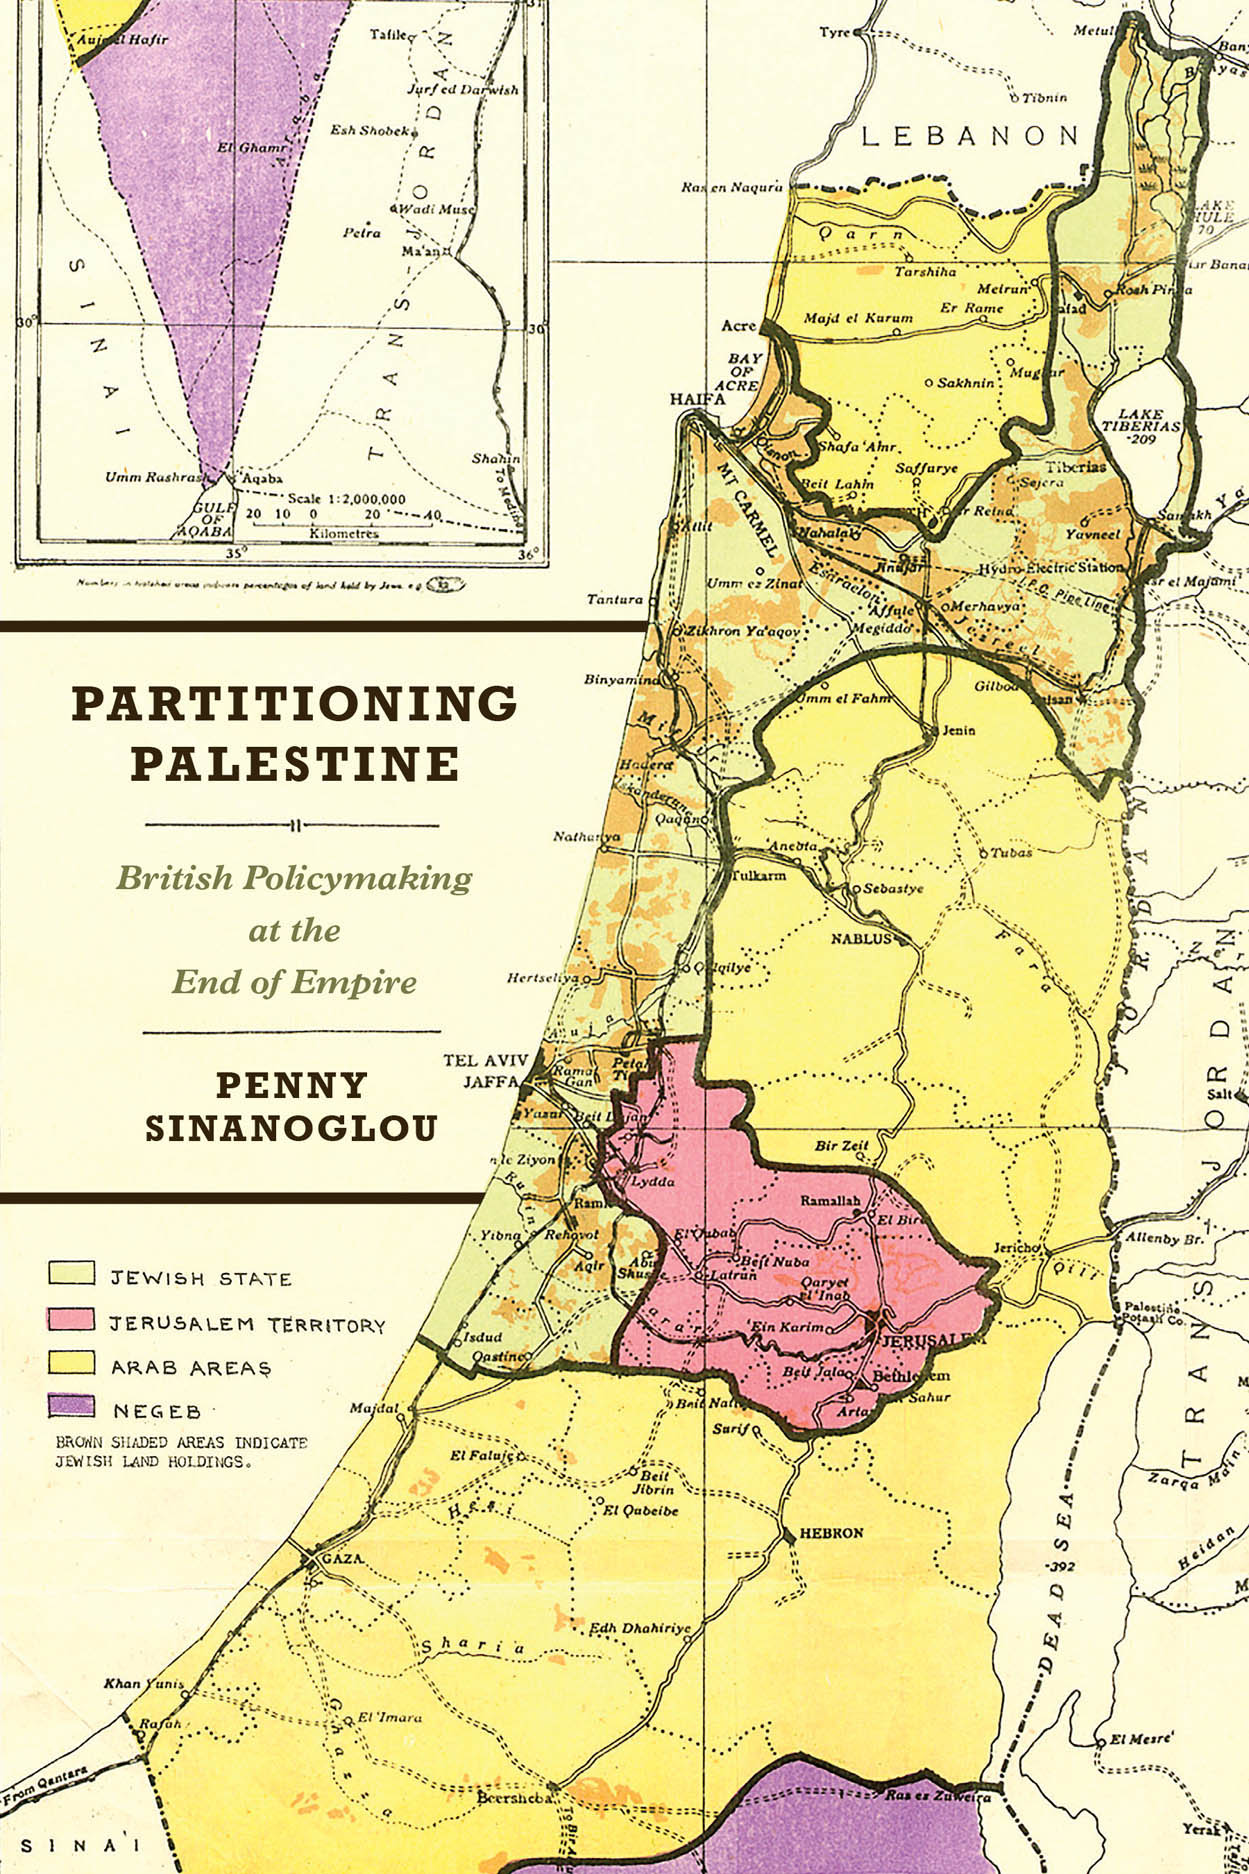 Partitioning Palestine: British Policymaking at the End of Empire